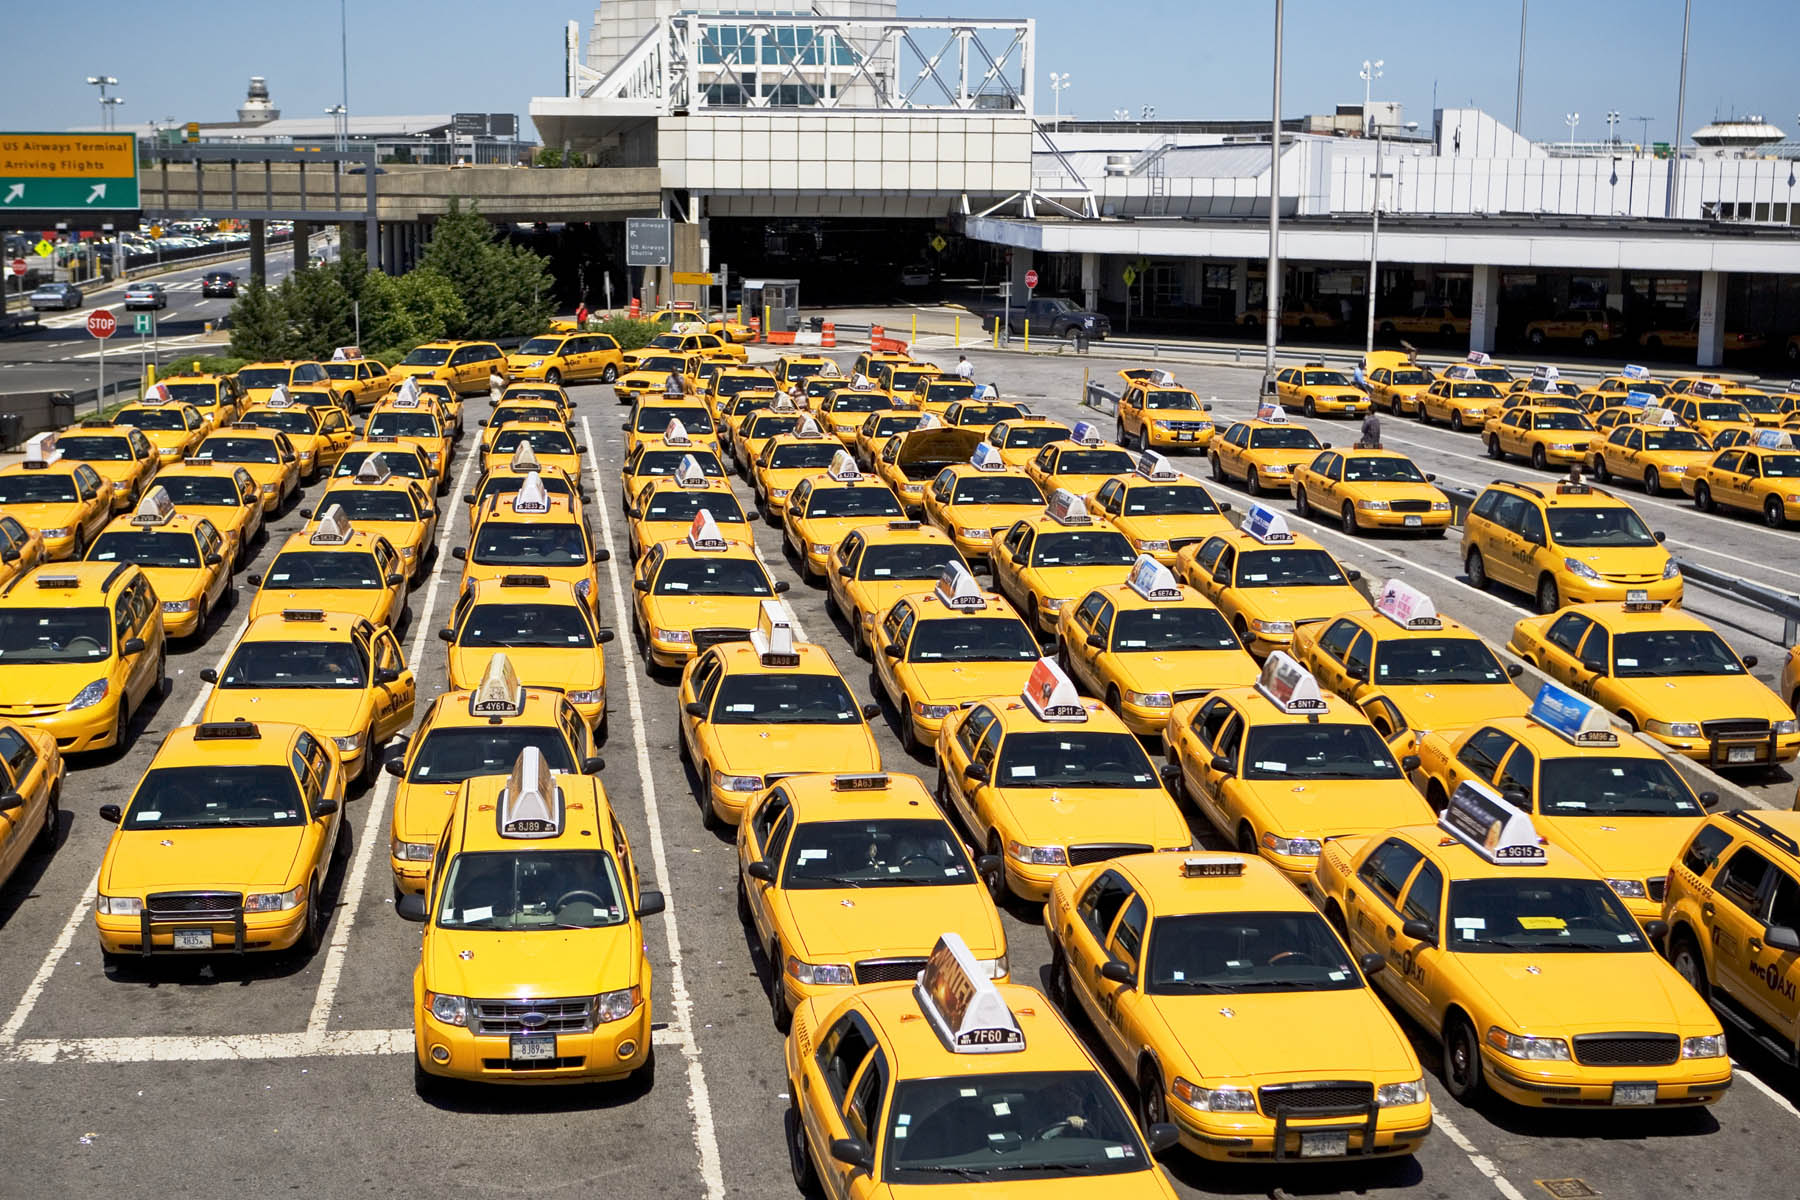 Corporation managing multiple taxi companies in Japan